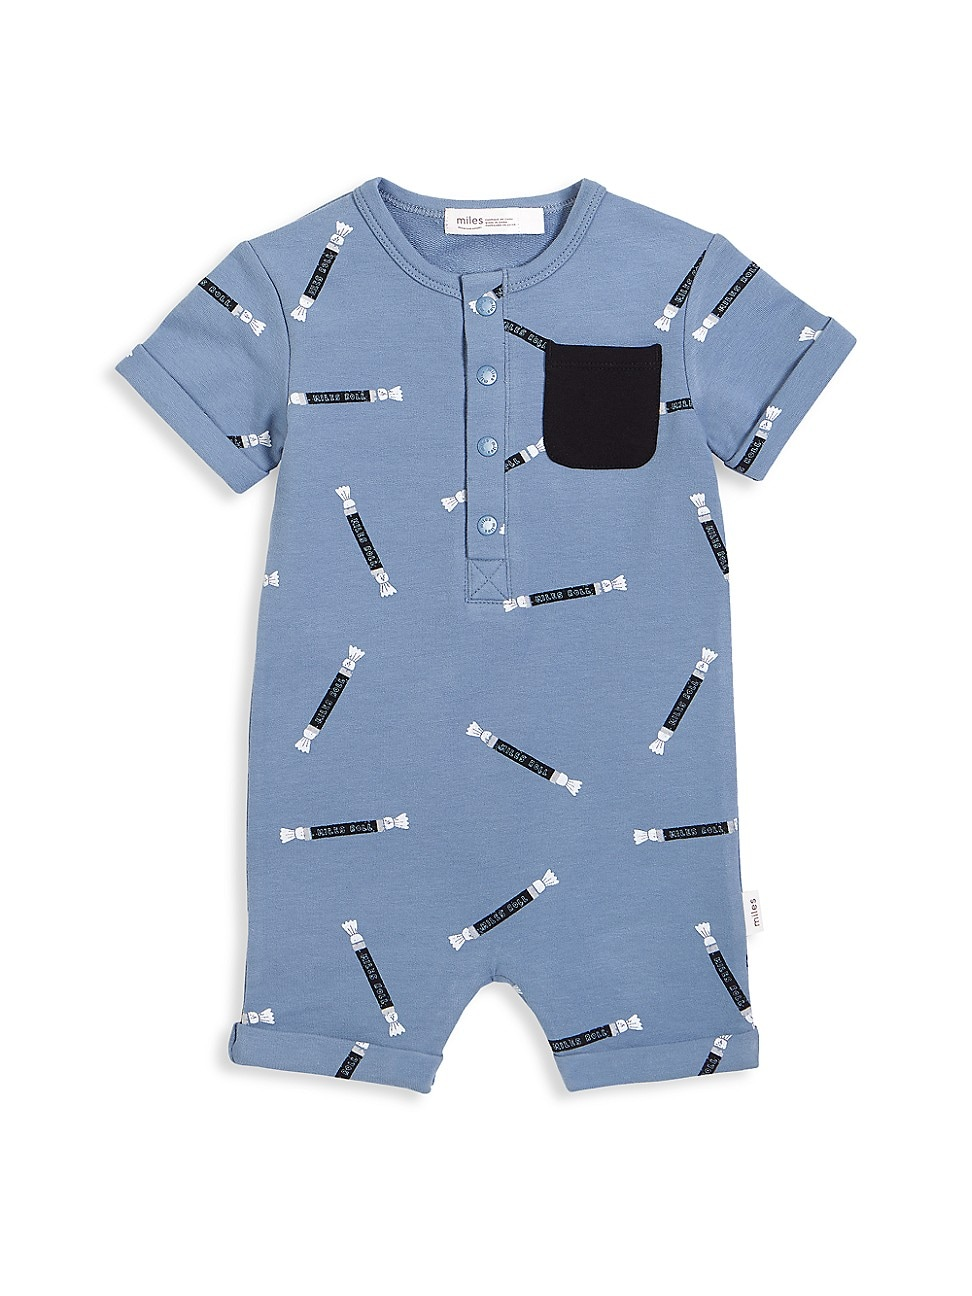 Miles Baby Climbing clotheses BABY BOY'S CANDY SKY ROLLS-PRINT ROMPER